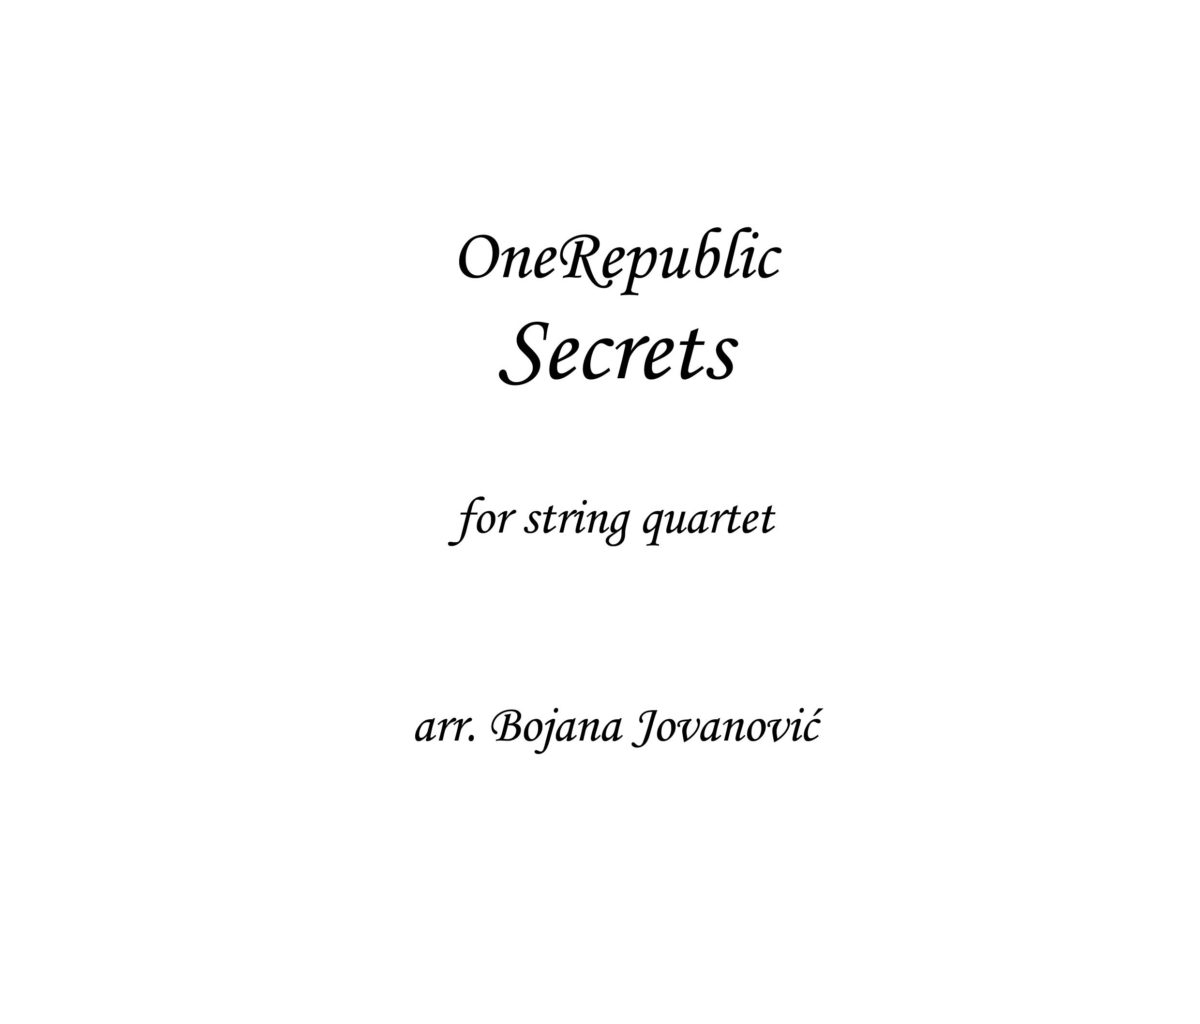 Secrets (OneRepublic) - Sheet Music